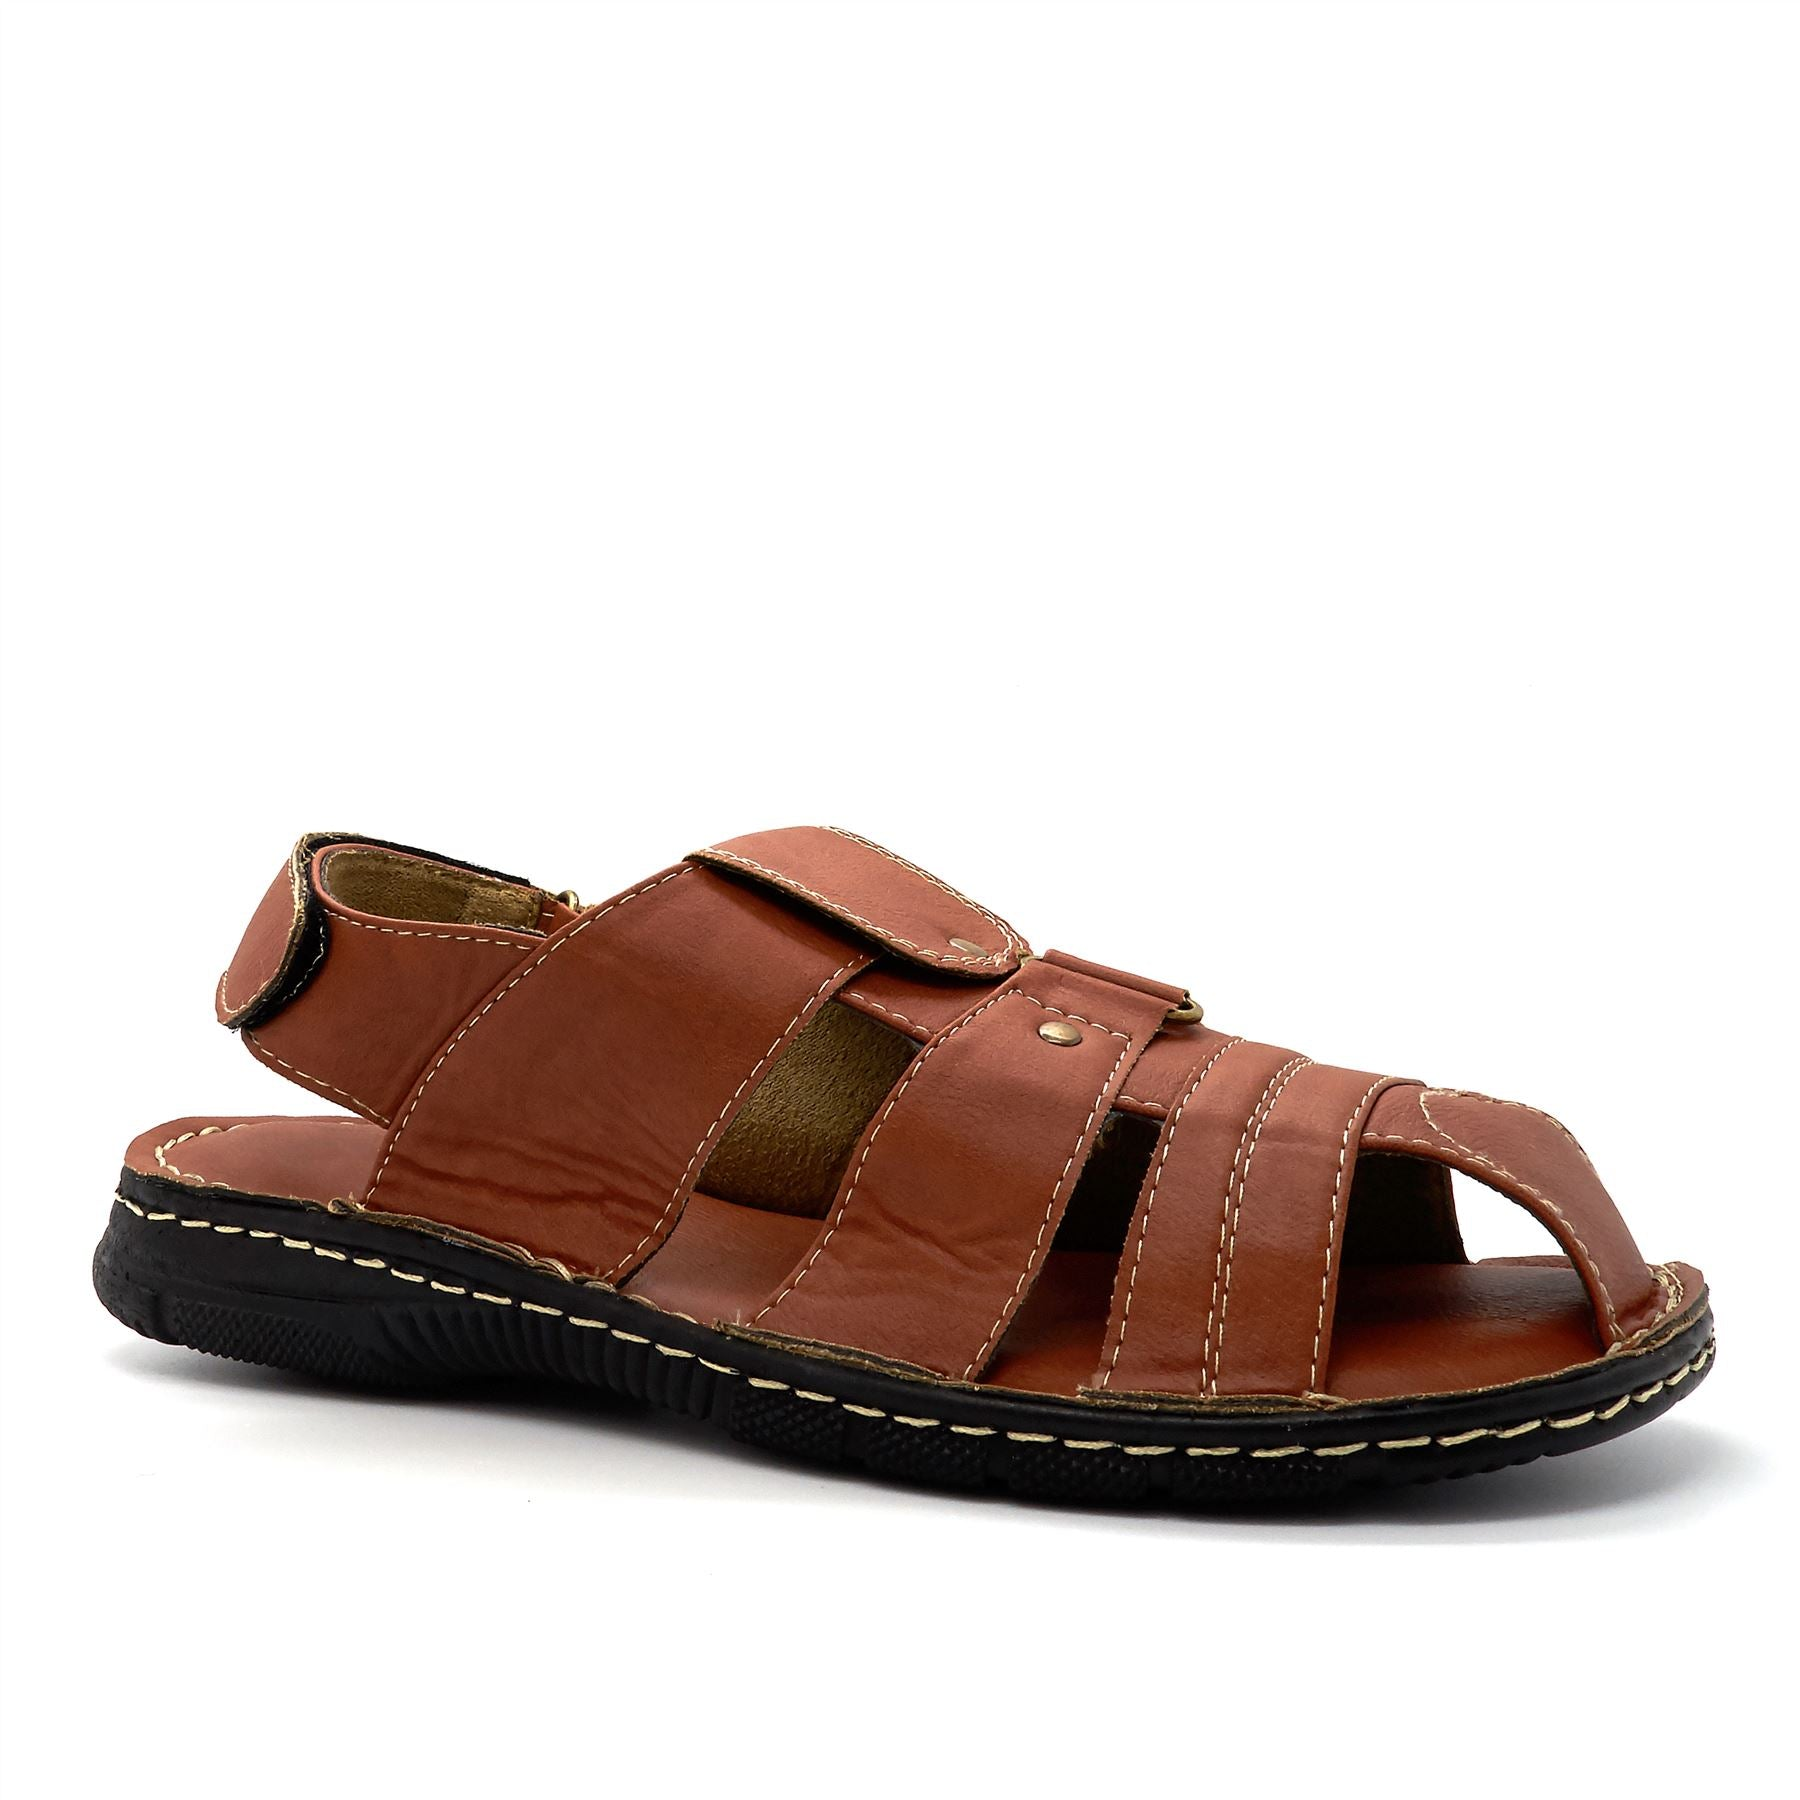 Tan Faux Leather Fisherman Sandals